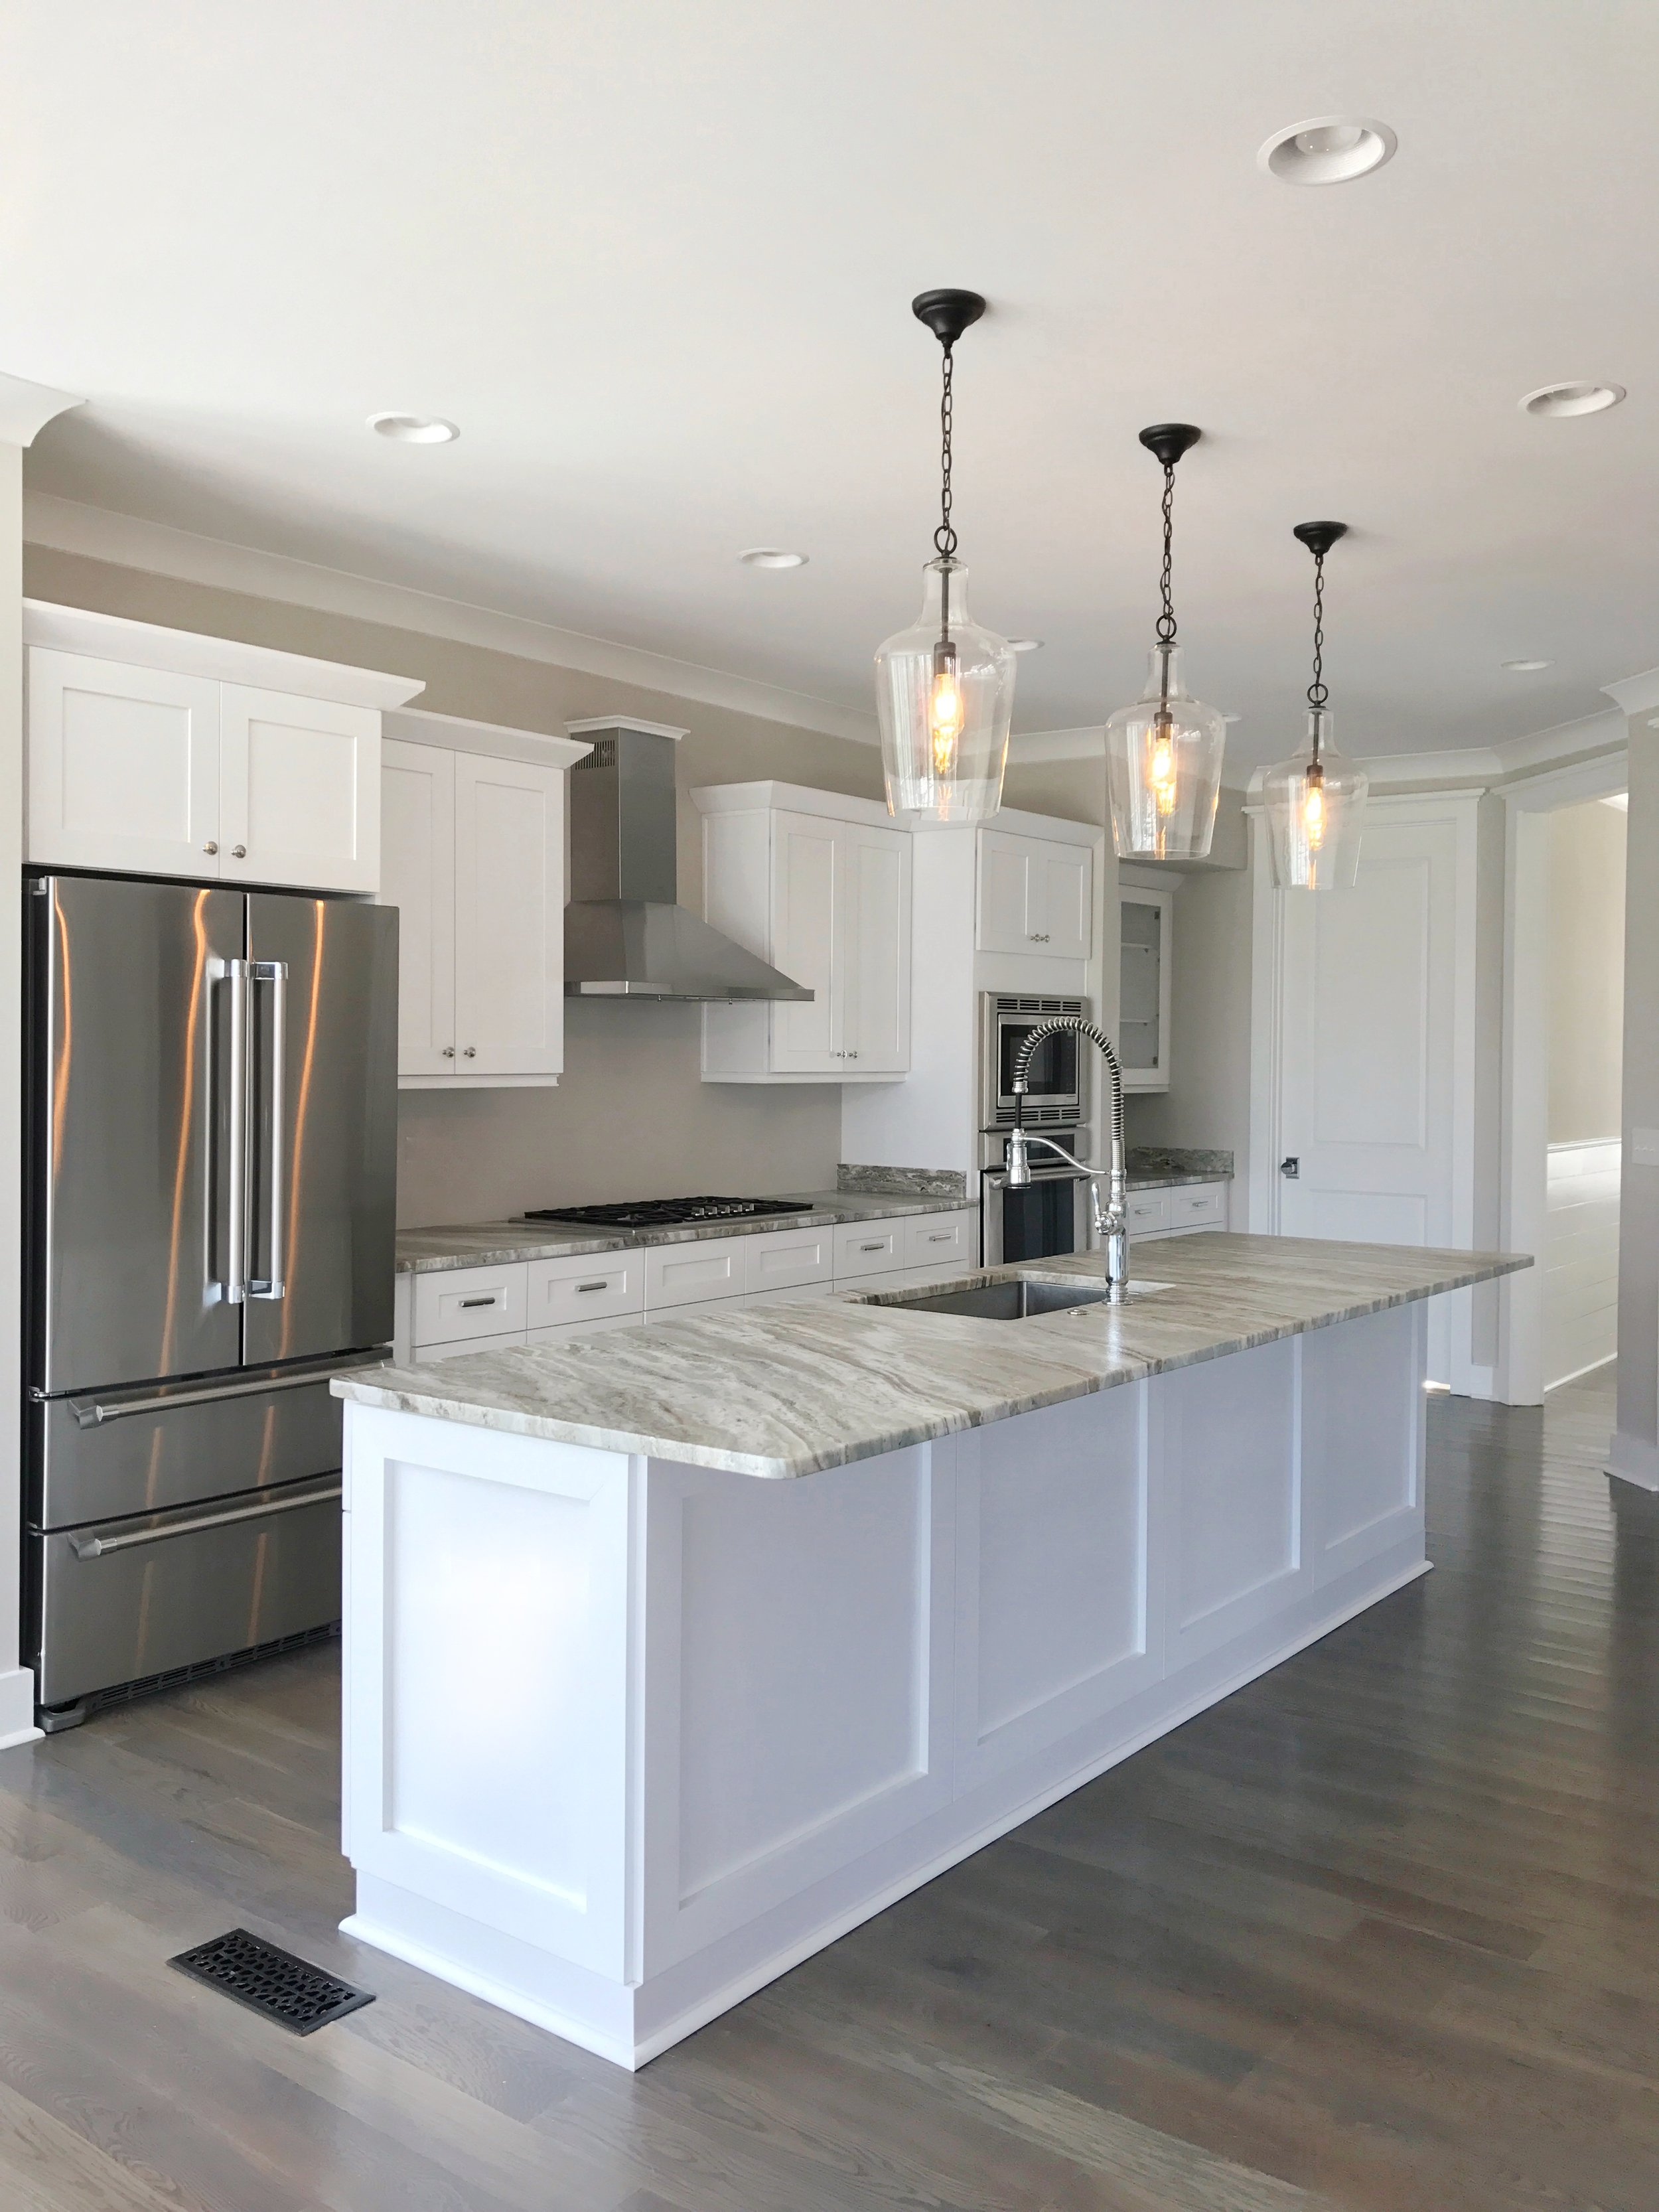 Mary Eliza Interiors - SSW Kitchen Design .jpg